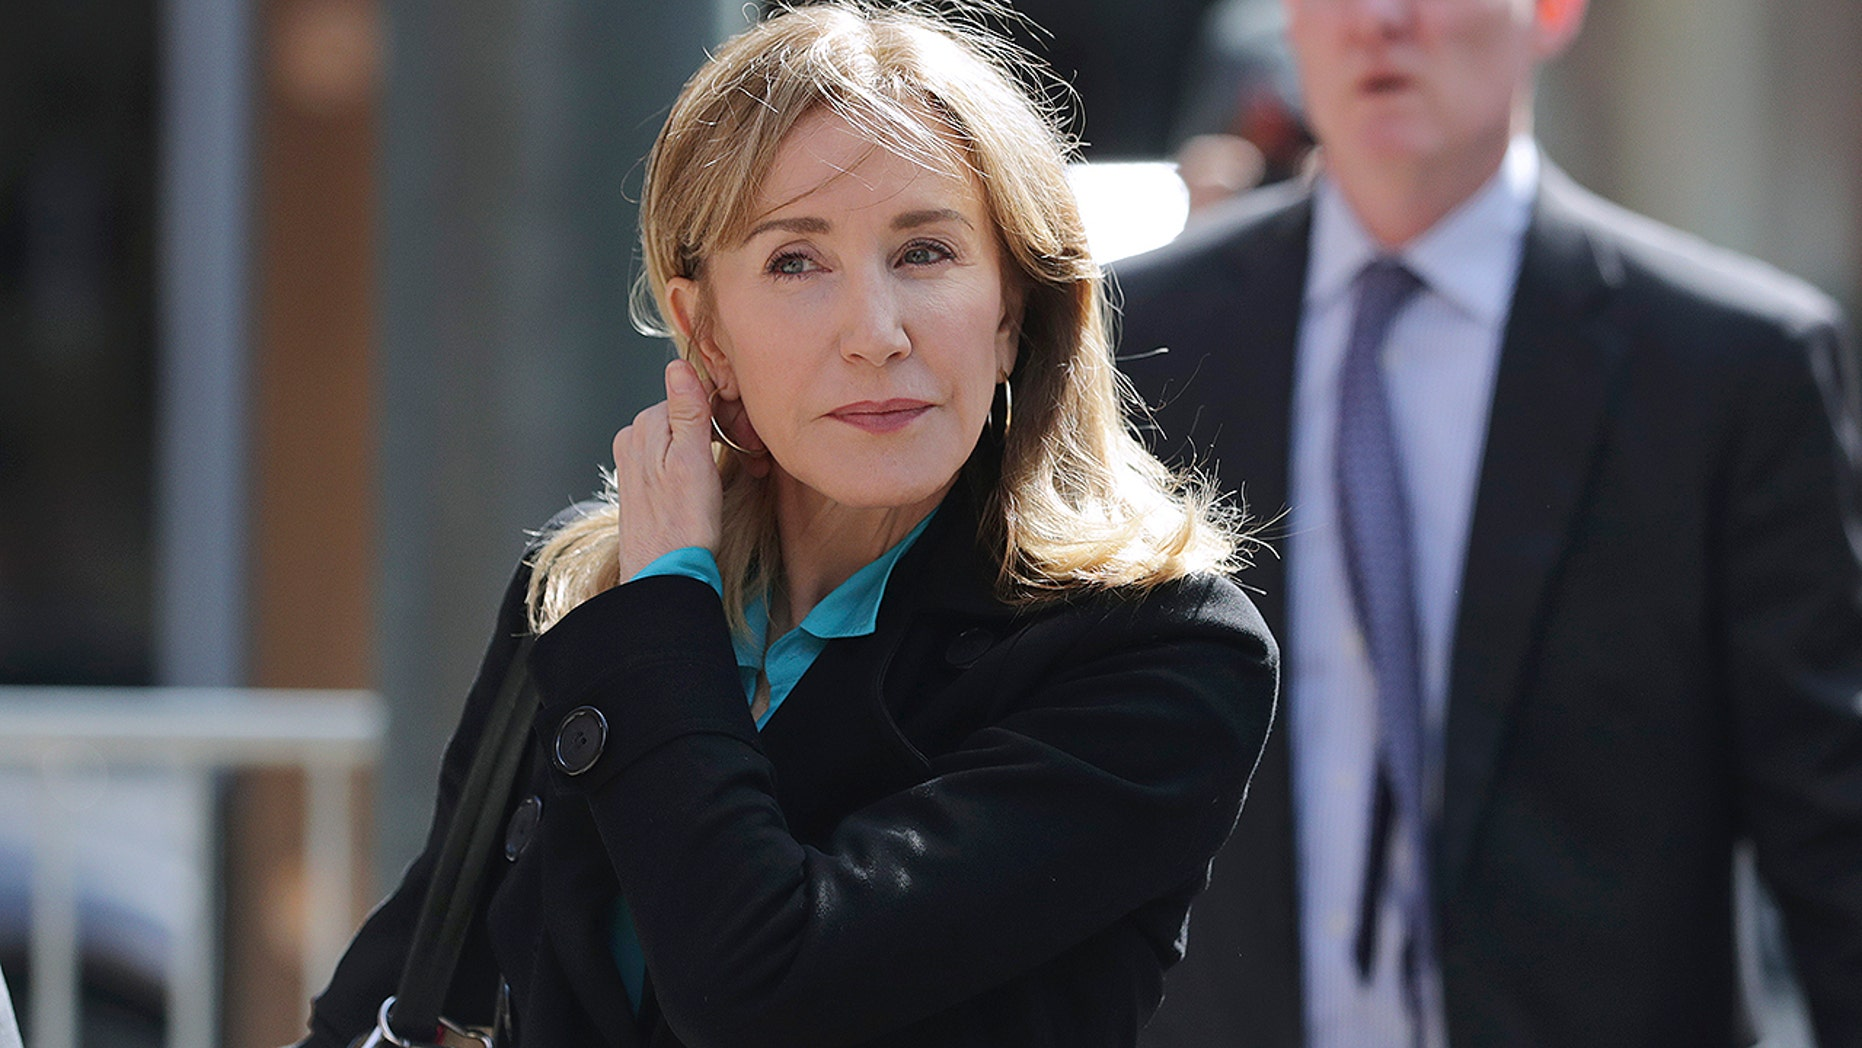 Actress Felicity Huffman arrives at federal court in Boston on Wednesday, April 3, 2019, to face charges in a nationwide college admissions bribery scandal. (Associated Press)